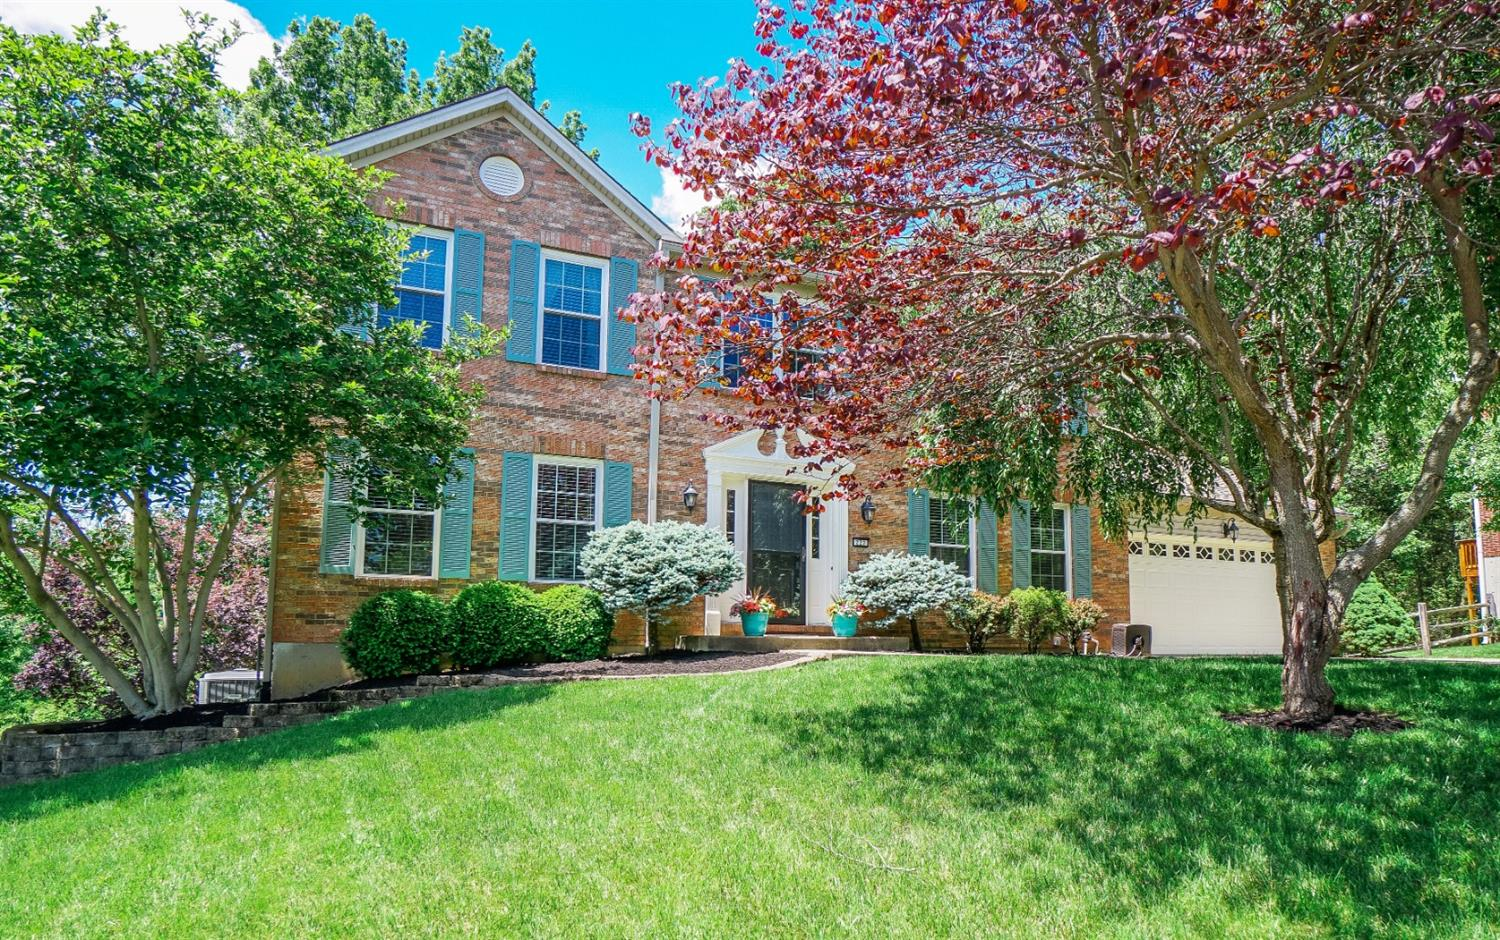 227 W Stoneridge Drive Cincinnati Home Listings - Comey & Shepherd Realtors Cincinnati Real Estate